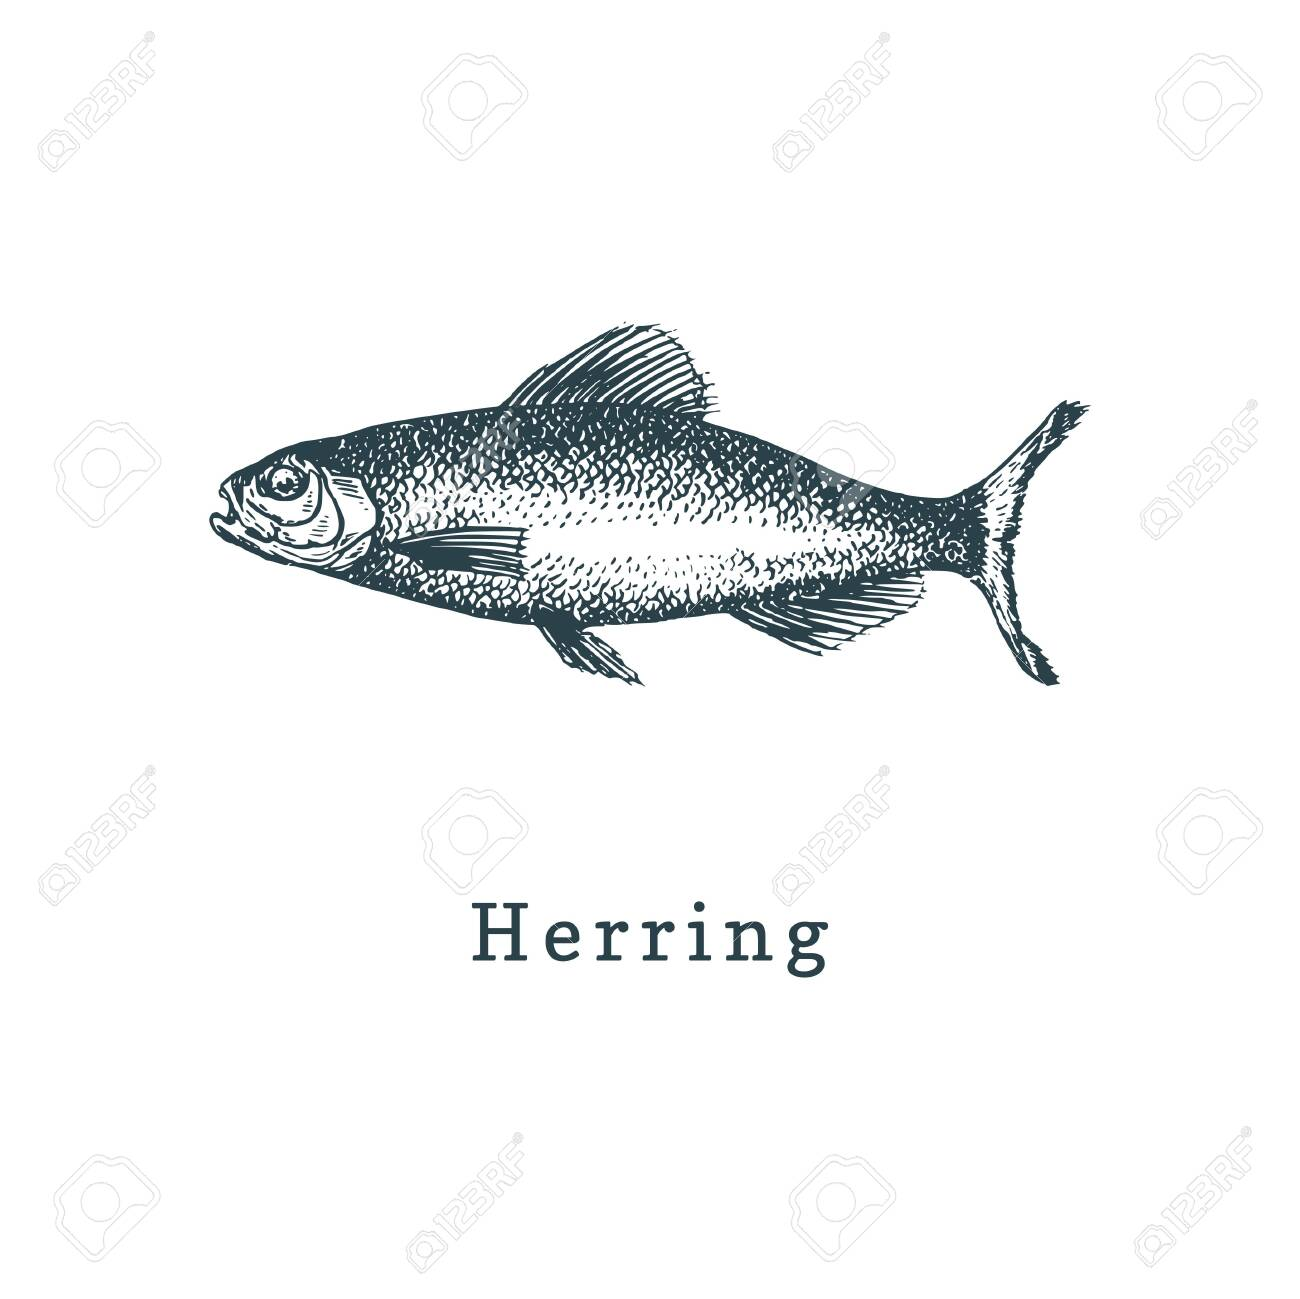 Illustration Of Herring Fish Sketch In Vector Drawn Seafood